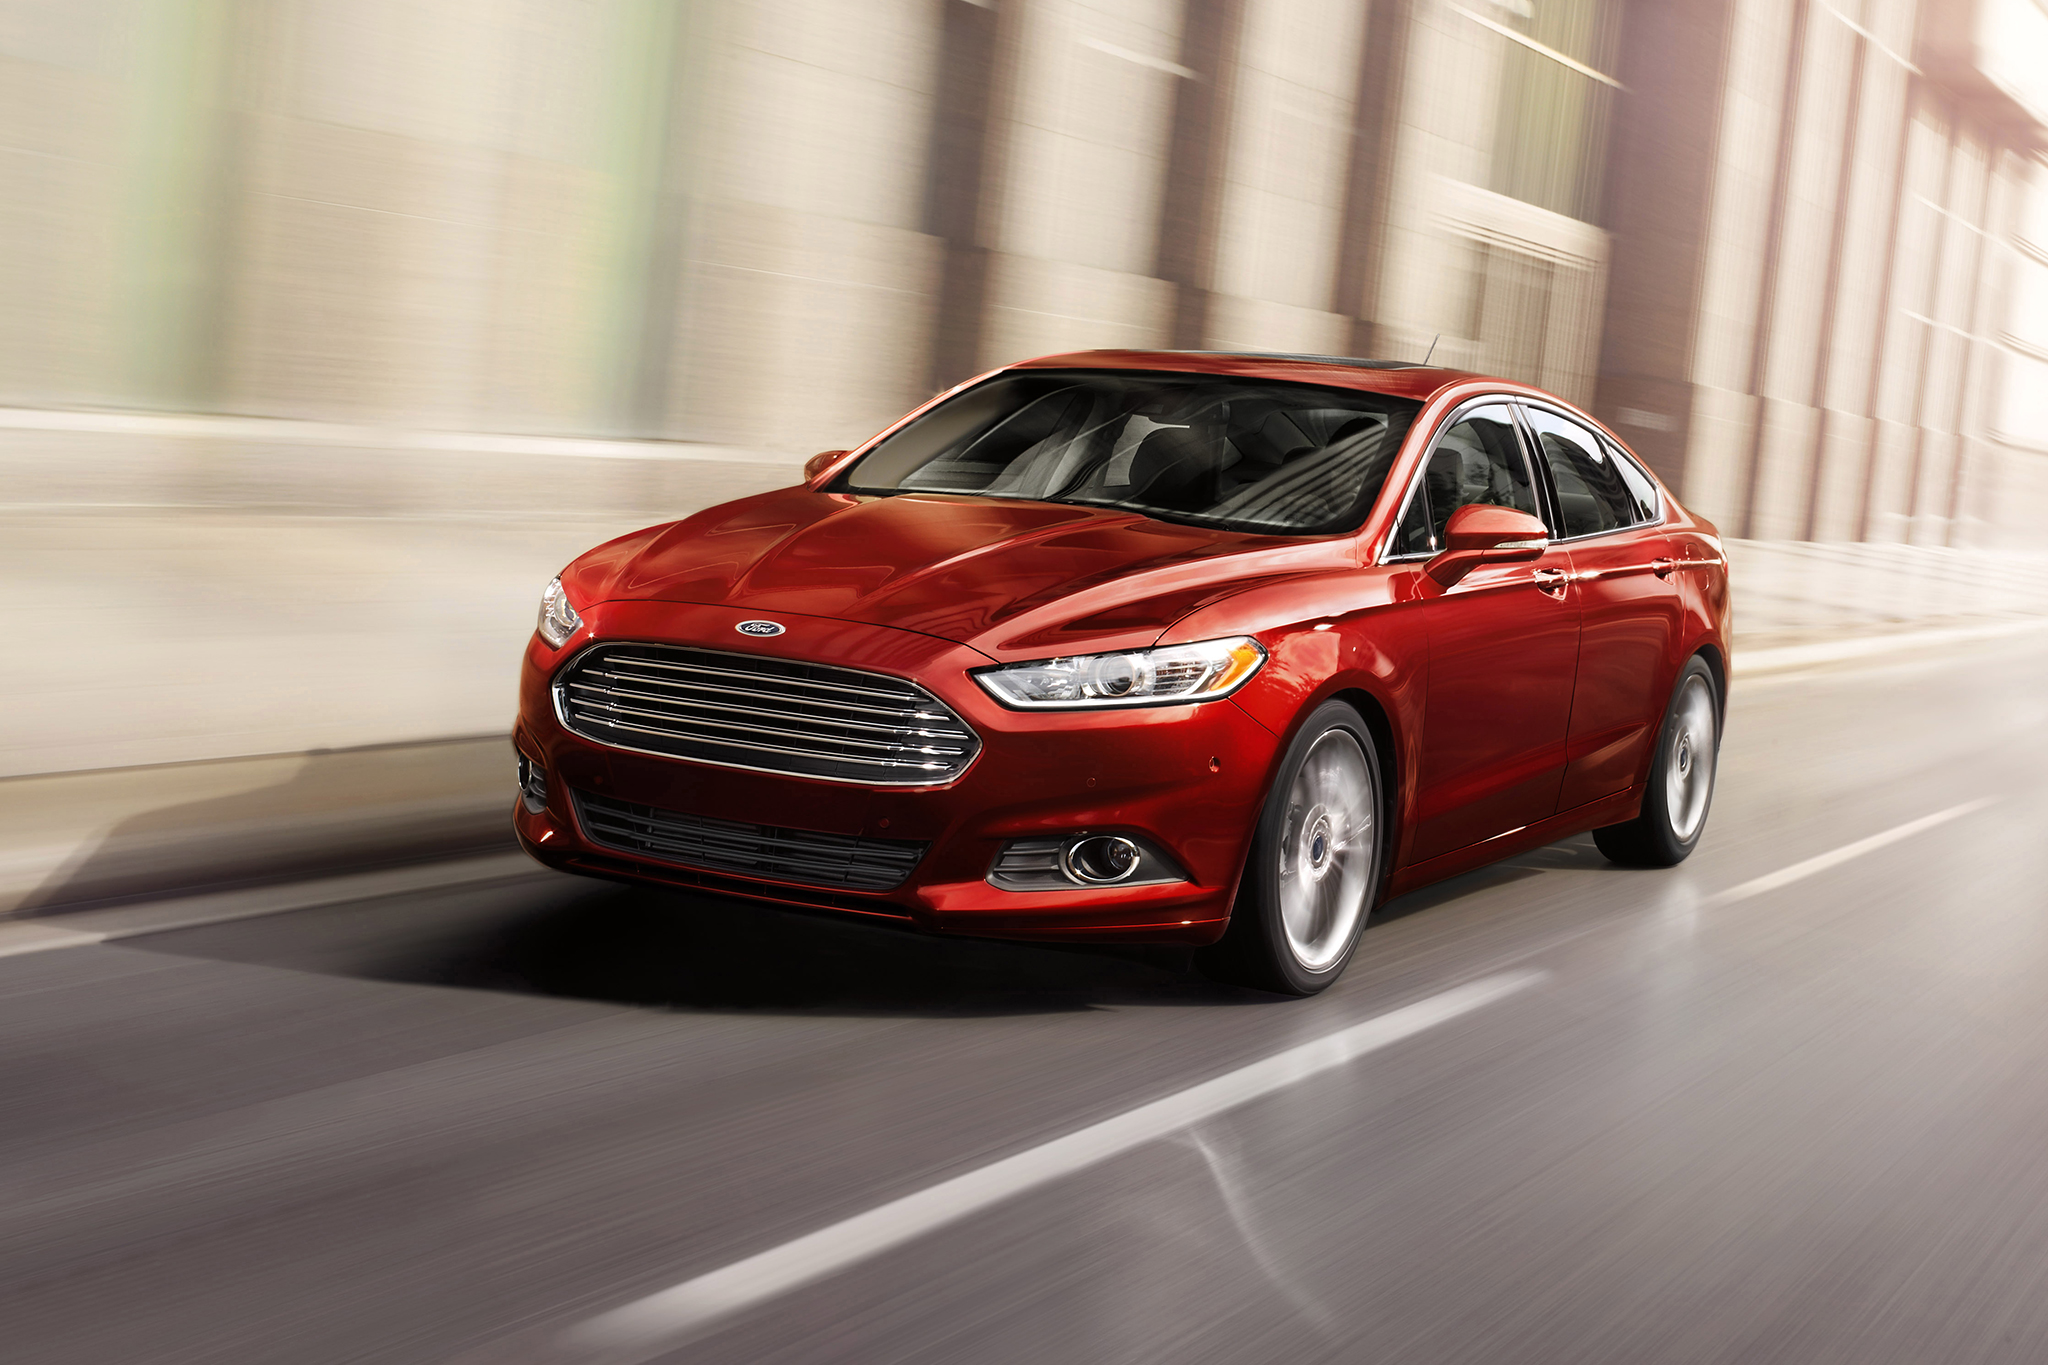 fusion the most is ford sought after from car